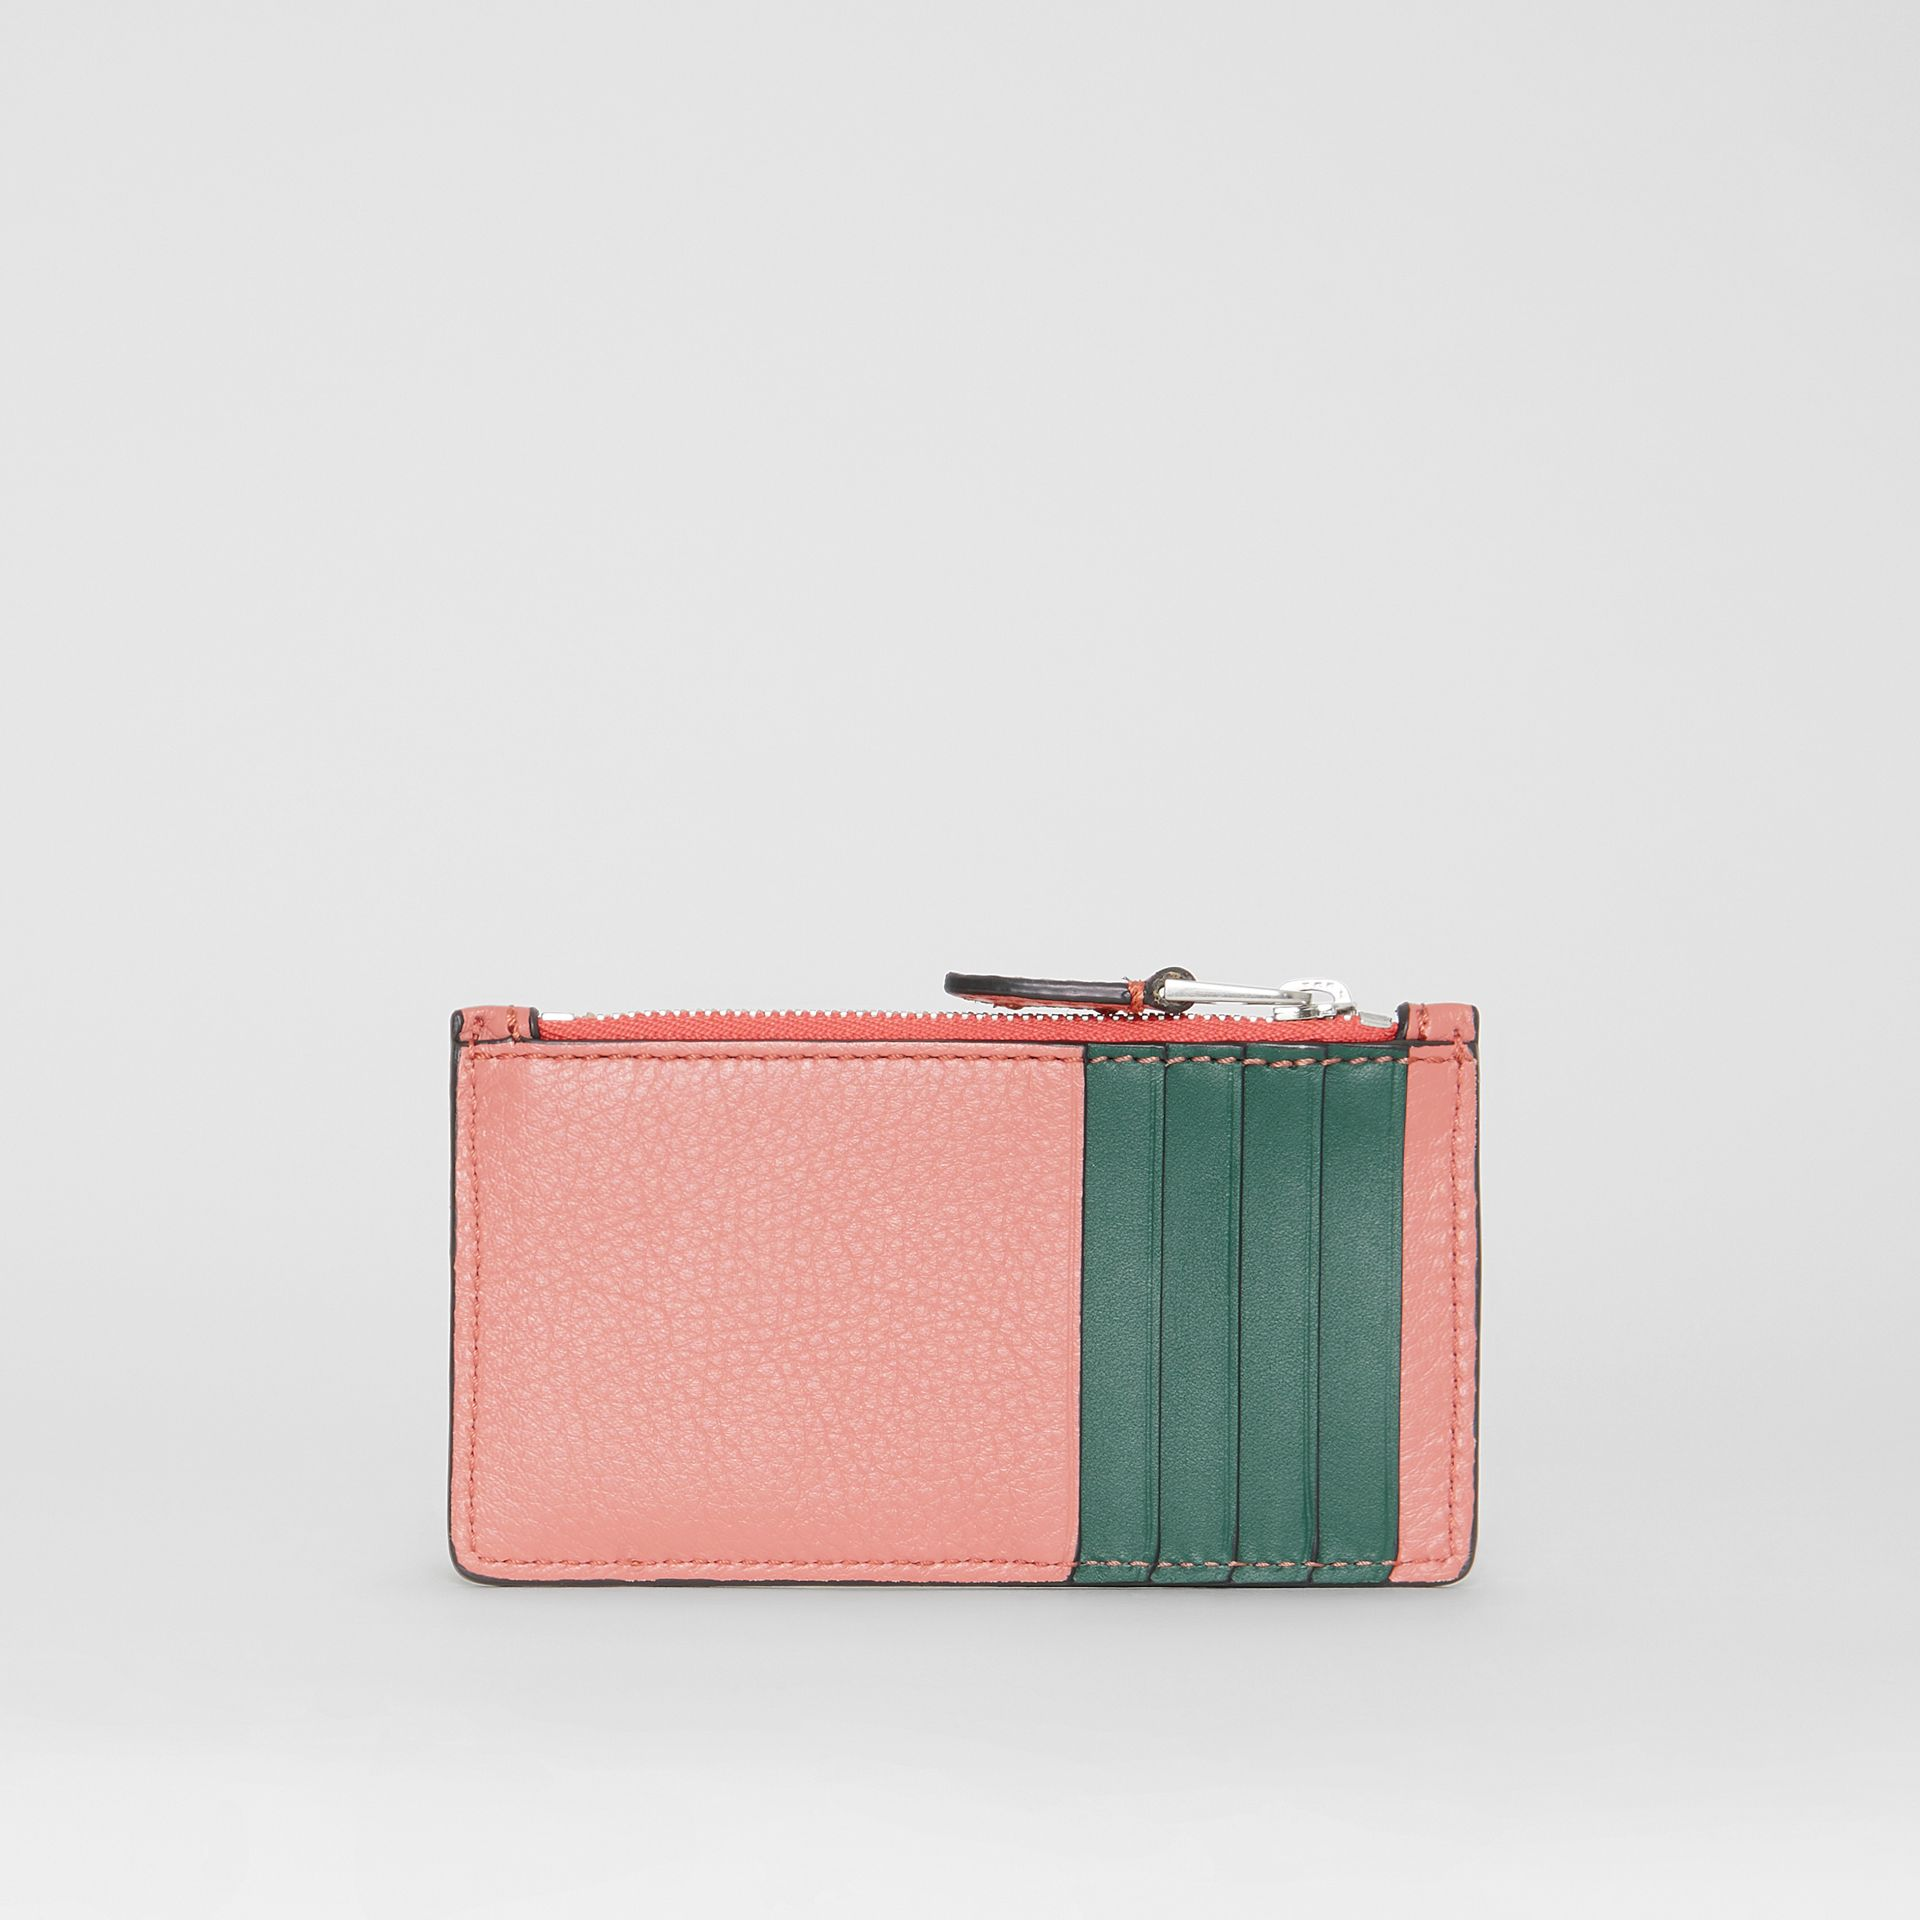 Two-tone Leather Zip Card Case in Dusty Rose - Women | Burberry - gallery image 4